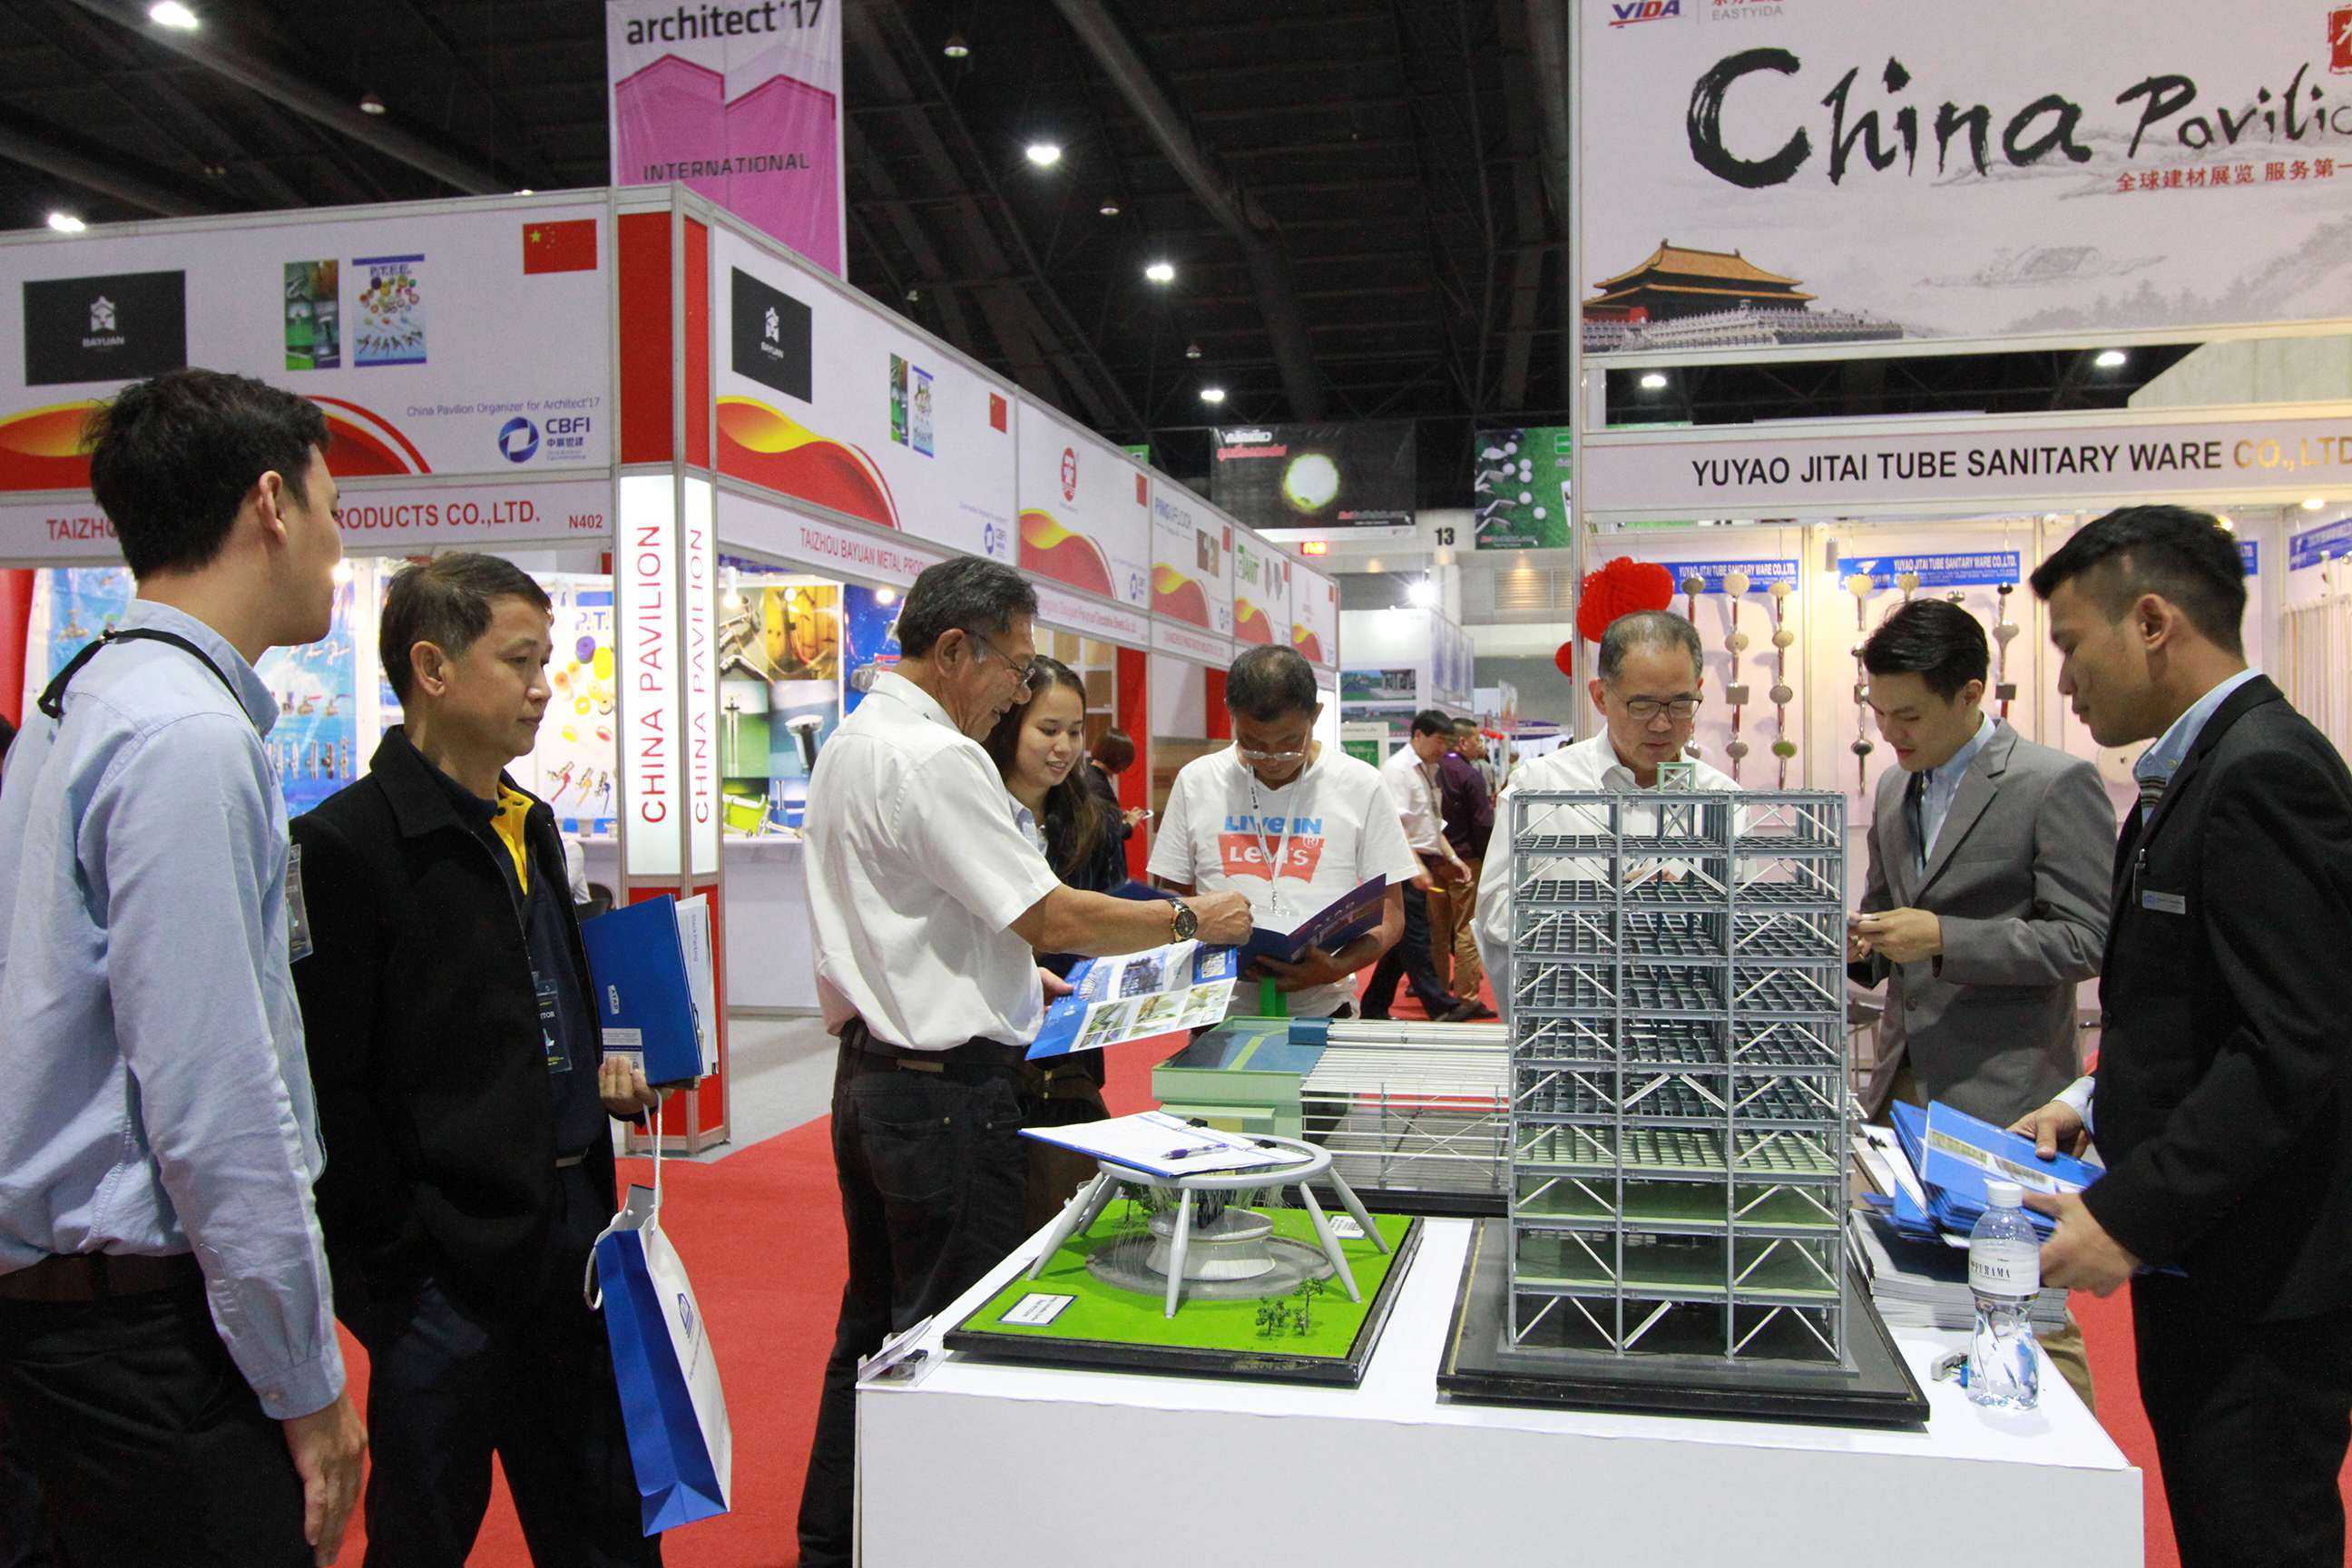 Our Thailand team offered visitors the professional consultancy for their projects